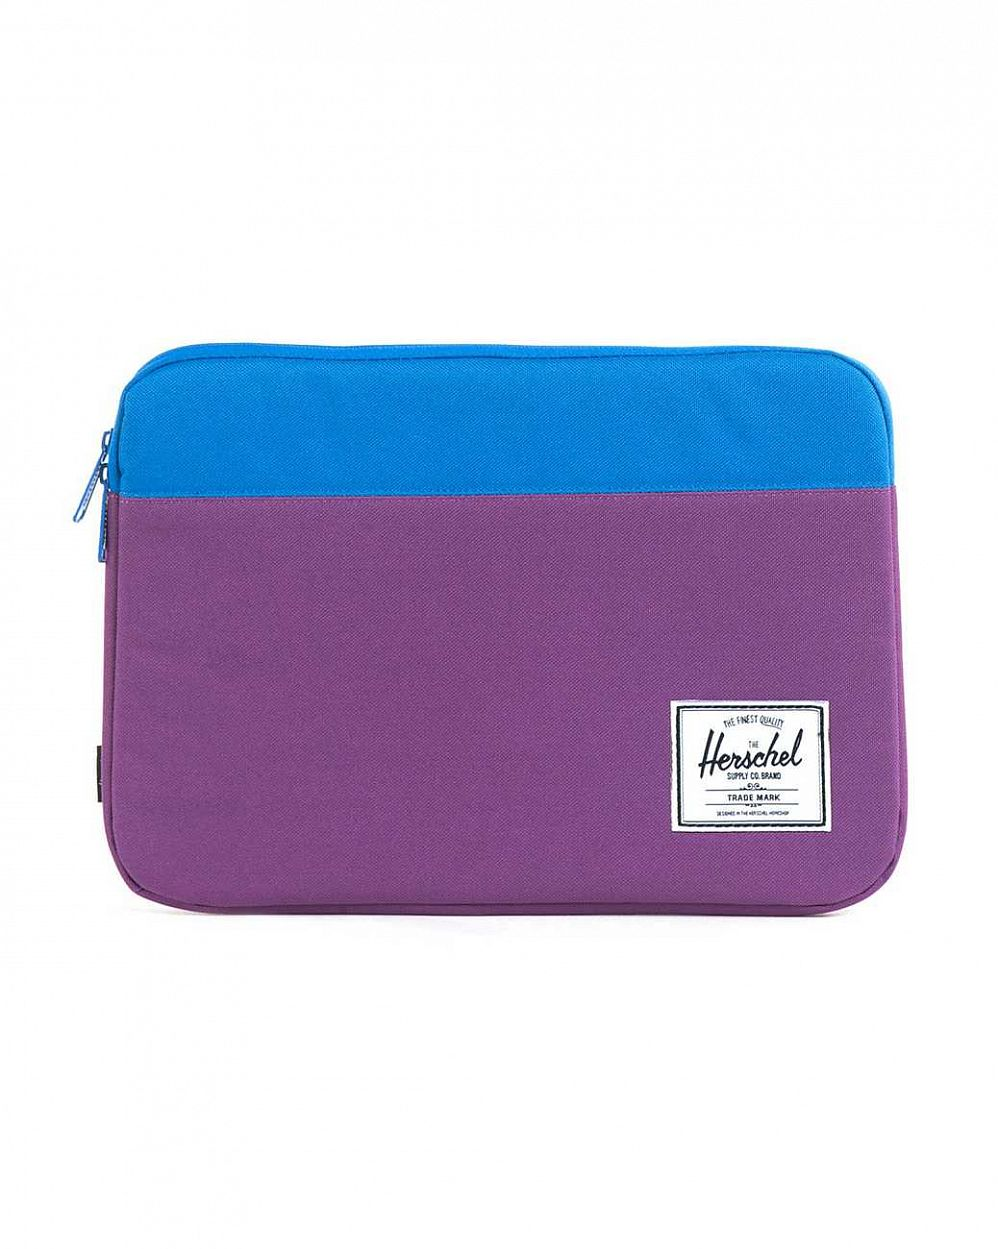 Чехол Herschel Anchor Sleeve для 13'' Macbook Purple Cobalt отзывы